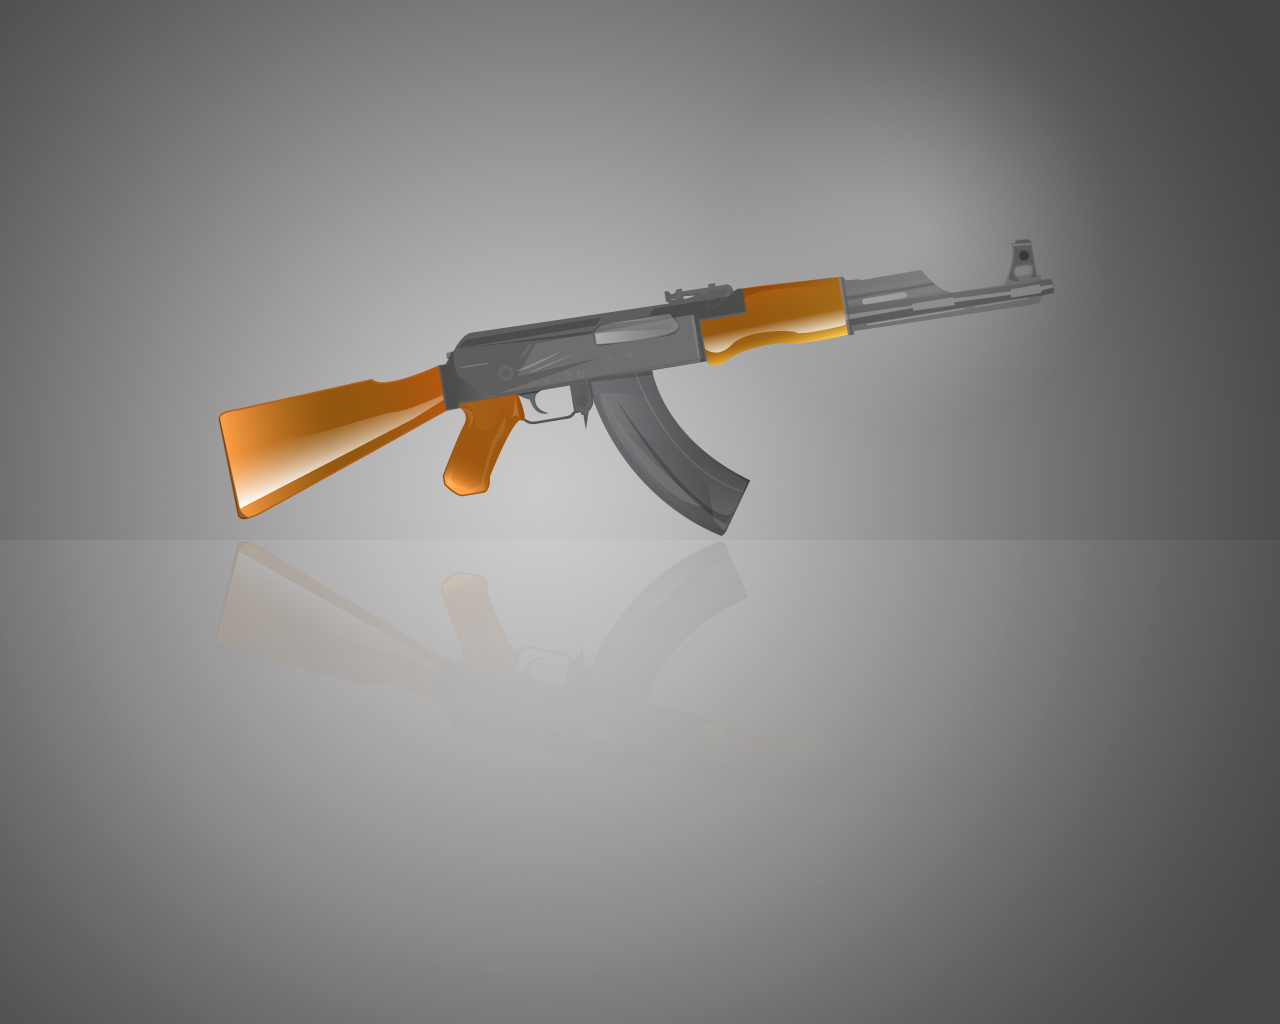 Ak 47 Wallpaper By Thisko On Deviantart